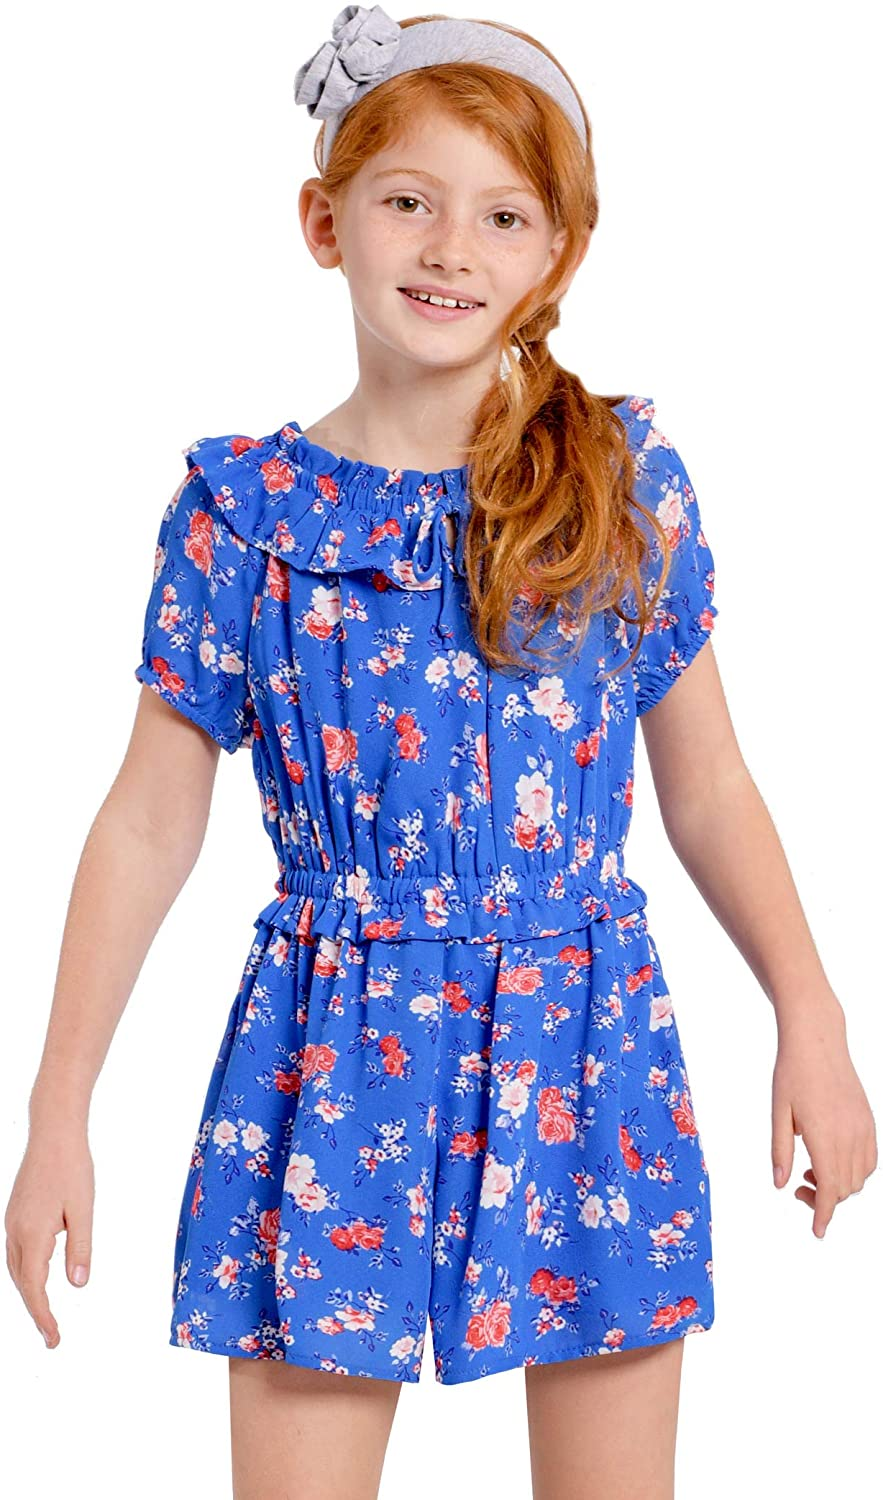 Truly Me Little and Big Short Girls' Sleeve Max 52% OFF Sleeveless Prin List price